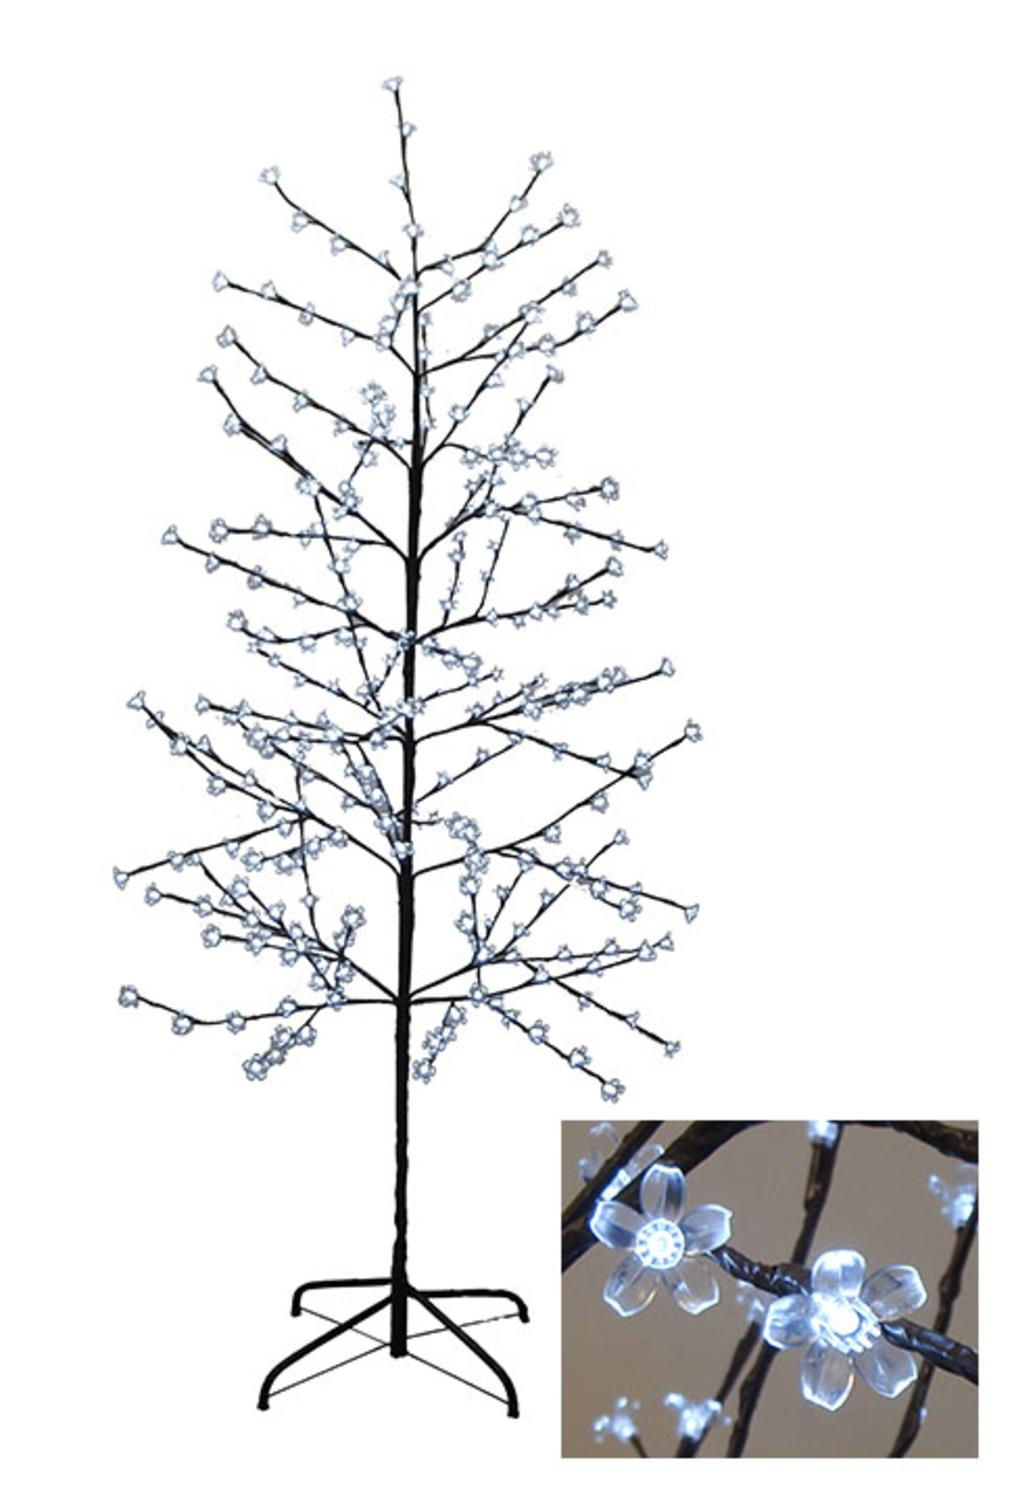 6' Enchanted Garden LED Lighted Fleur de cerisier Arbre de fleur - Lumières Pure White